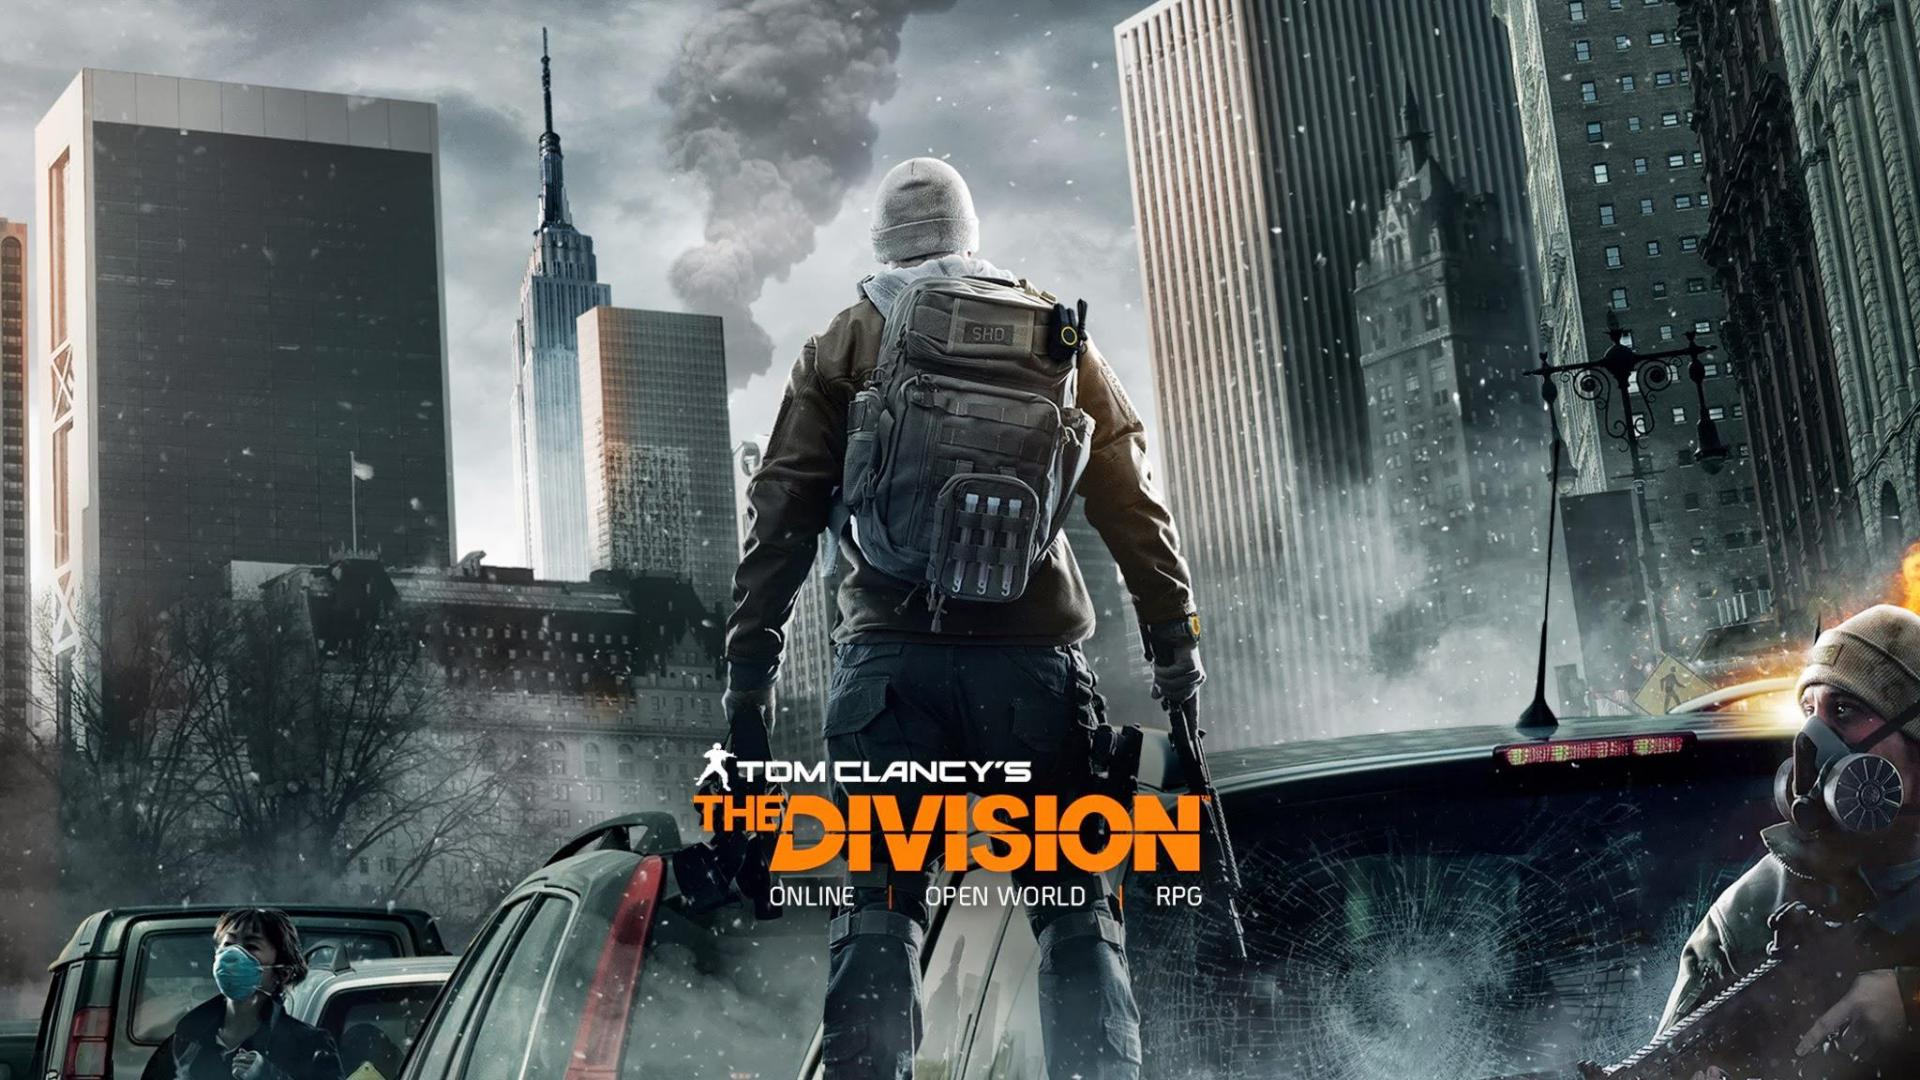 What We Know About The Division.